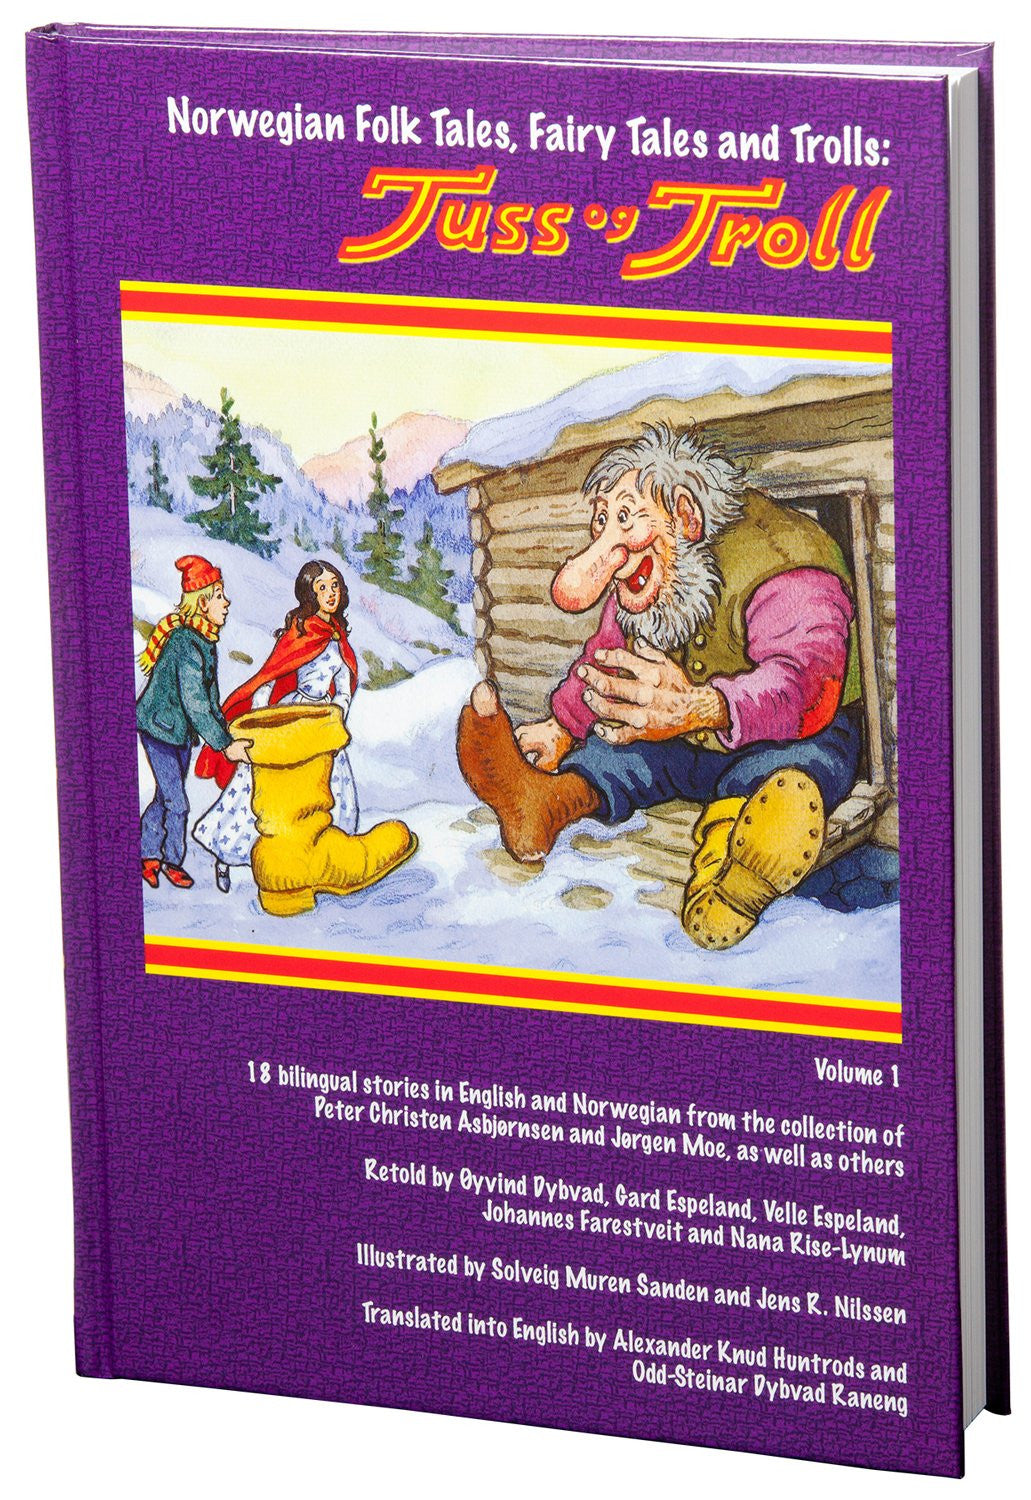 Norwegian Folk Tales, Fairy Tales and Trolls: Tuss og Troll, Volume 1 by Asbjørnsen and Moe